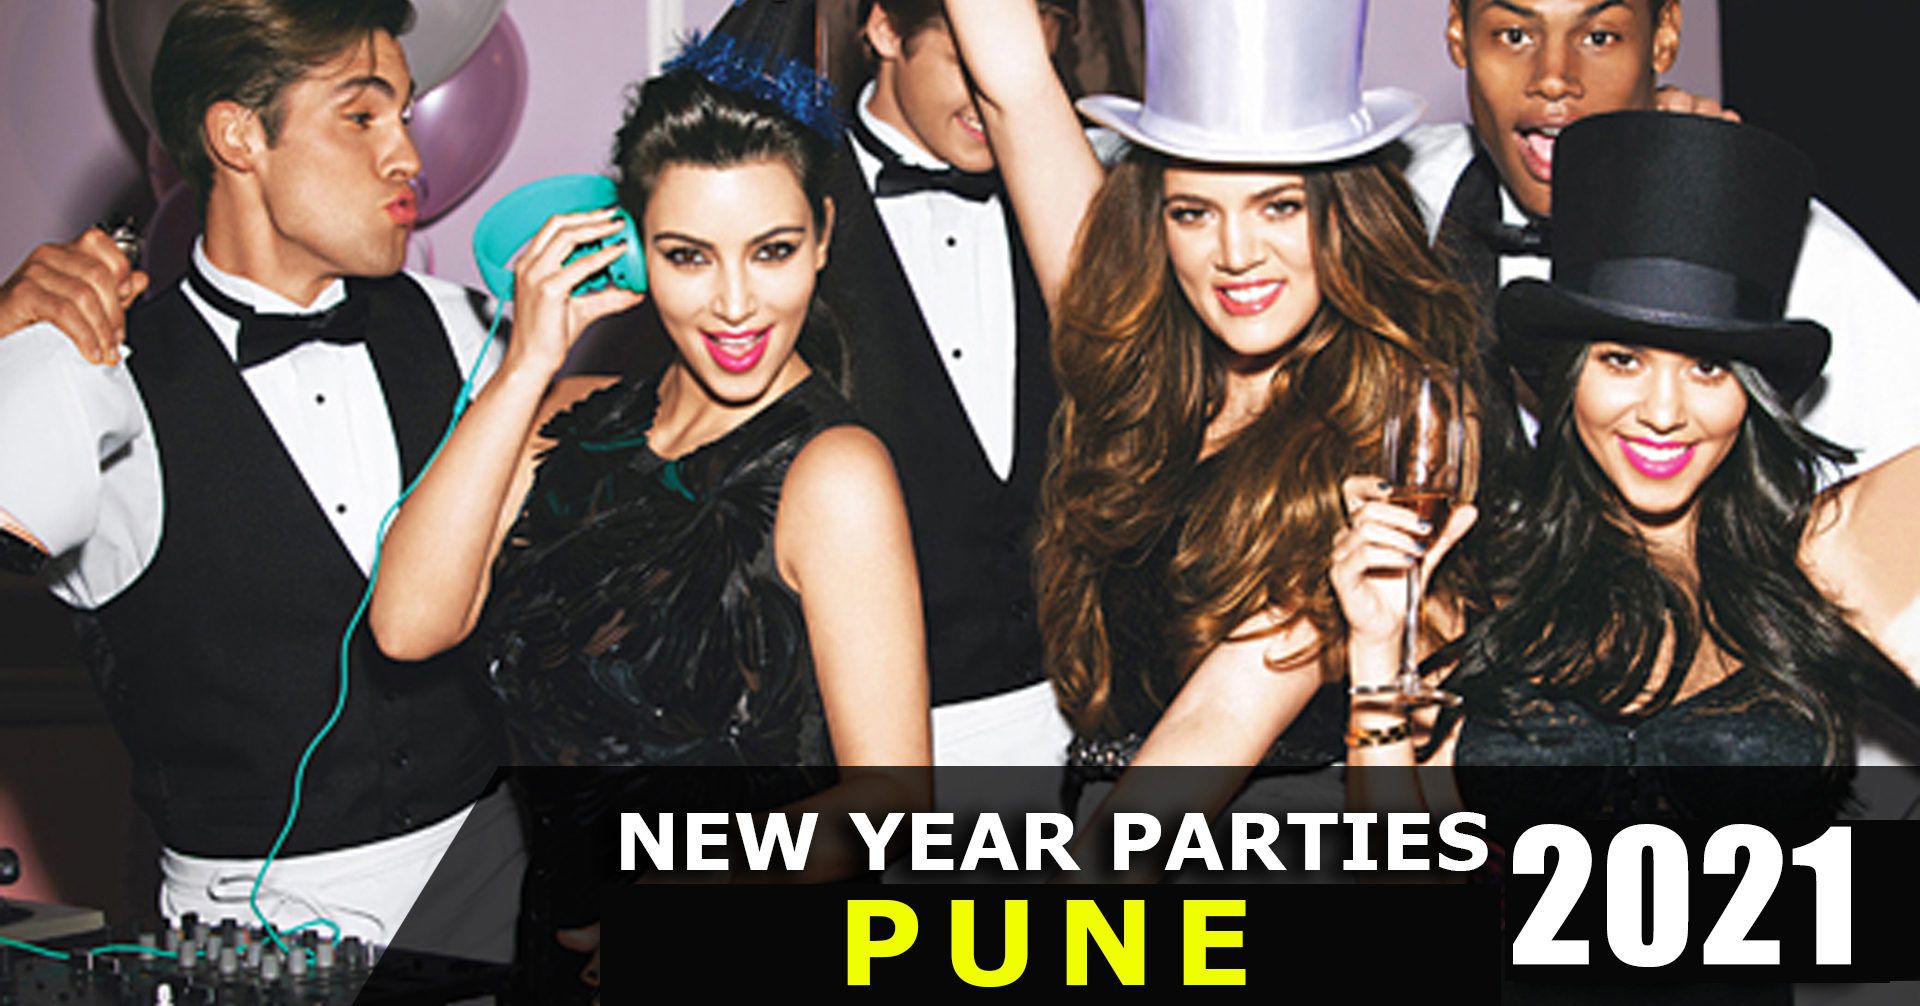 0 Handpicked New Year Events & Parties 2021 in Pune - HighApe